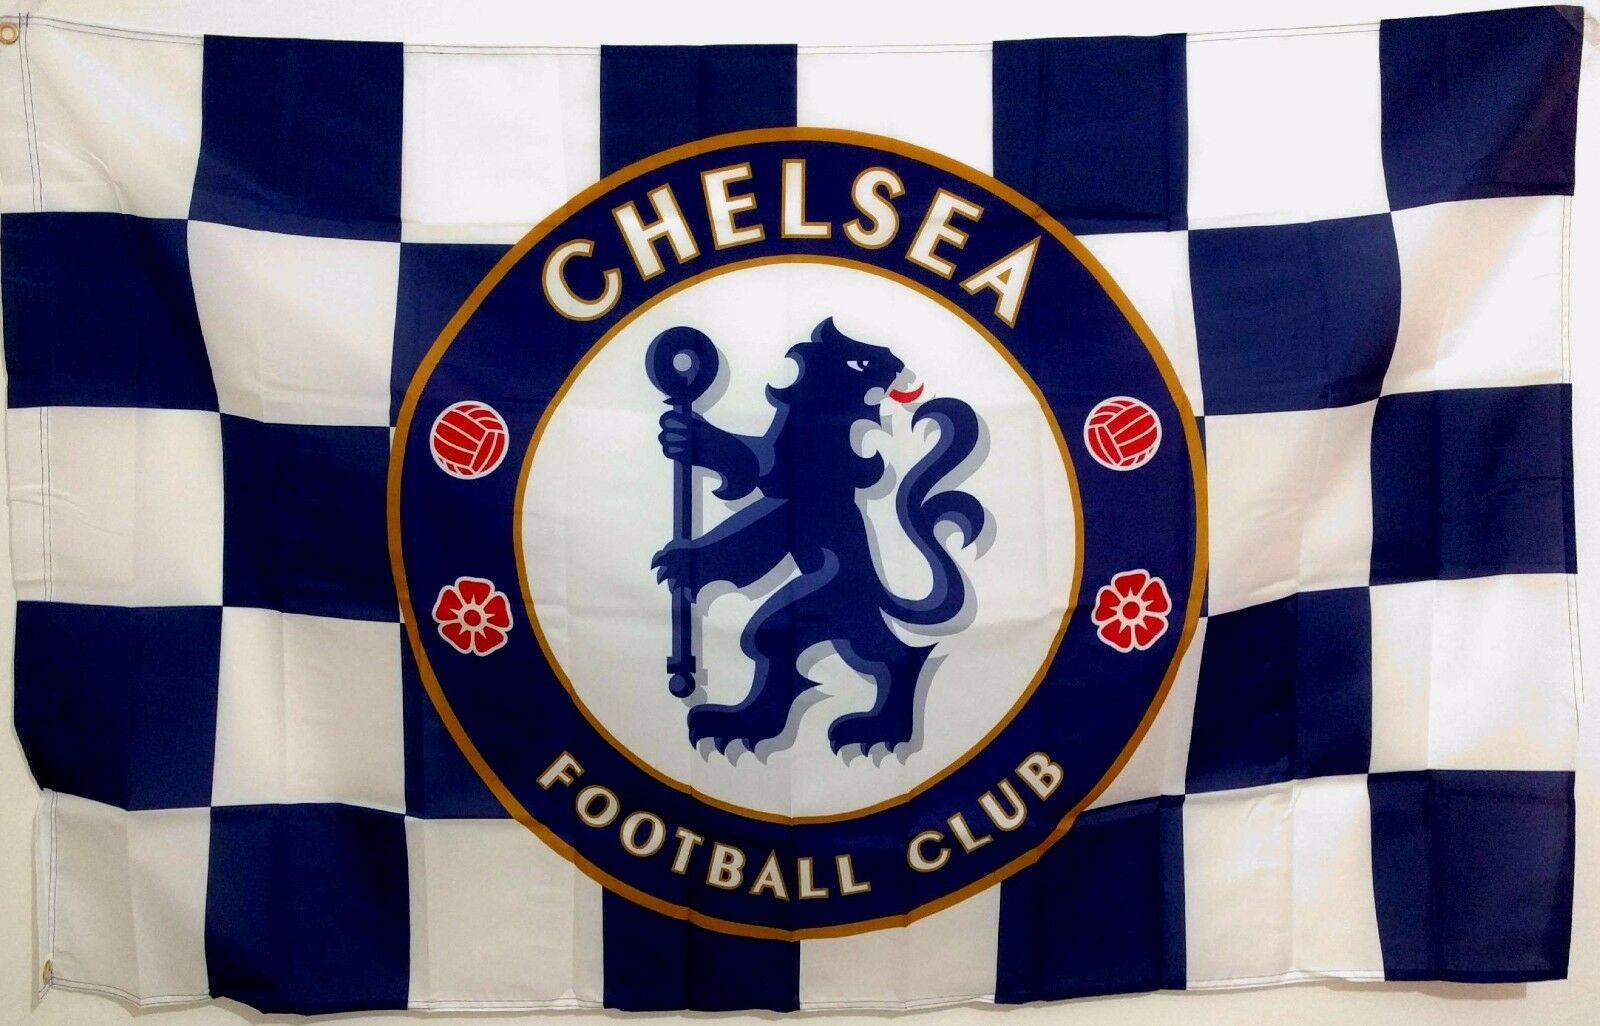 Details About Chelsea Fc Flag Banner 3ft X 5ft Football Soccer Blues Checkers Sticker As Gift